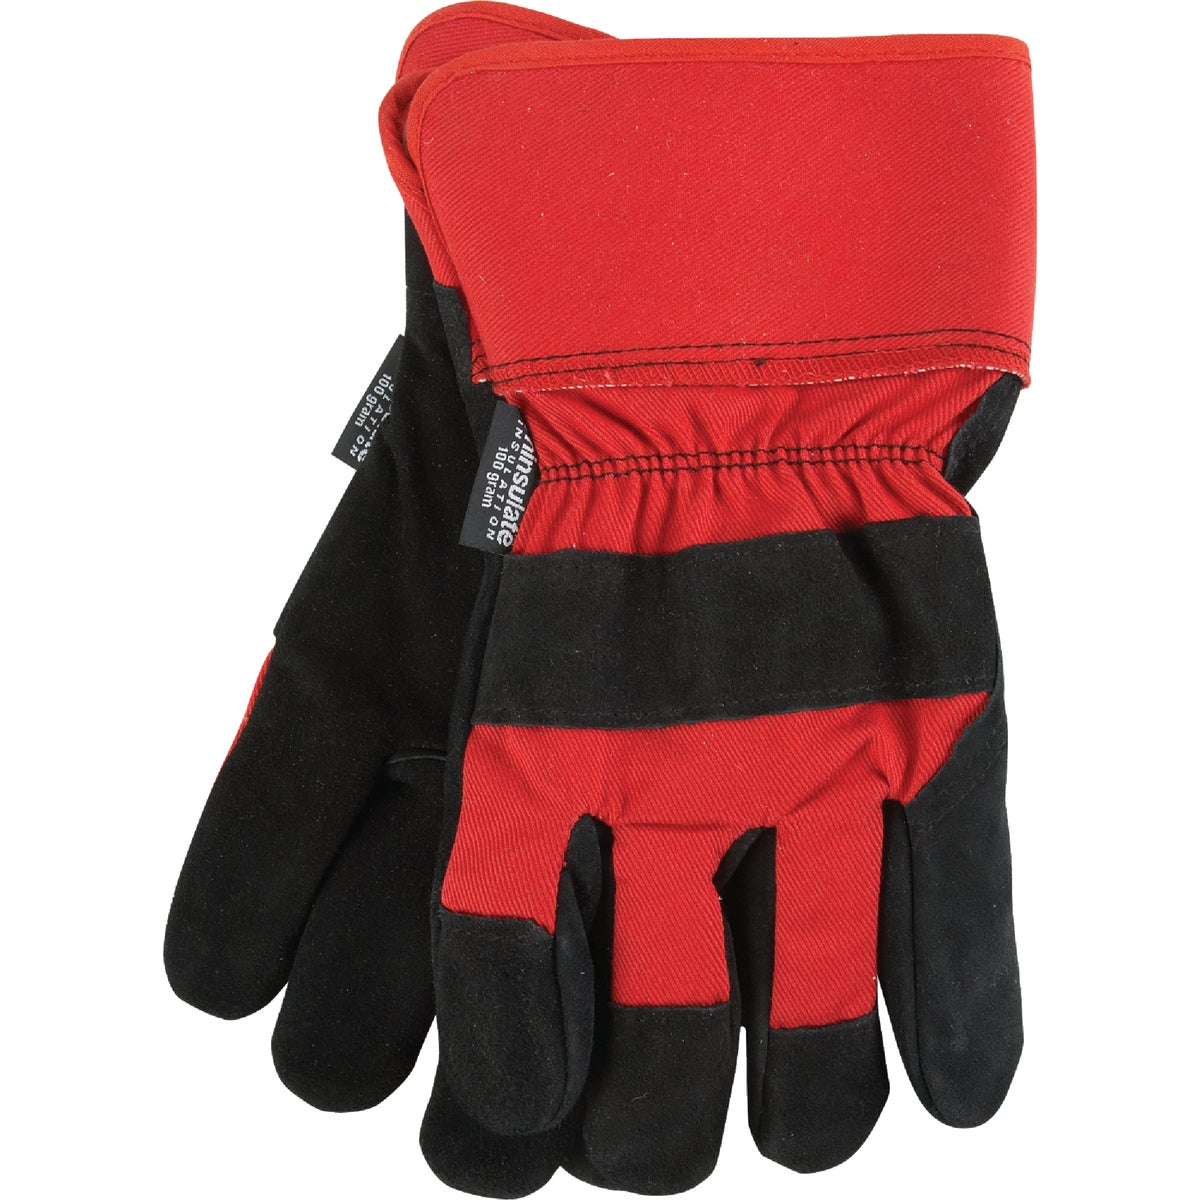 LRG MENS COWHIDE GLOVE - 707462 by Do it Best